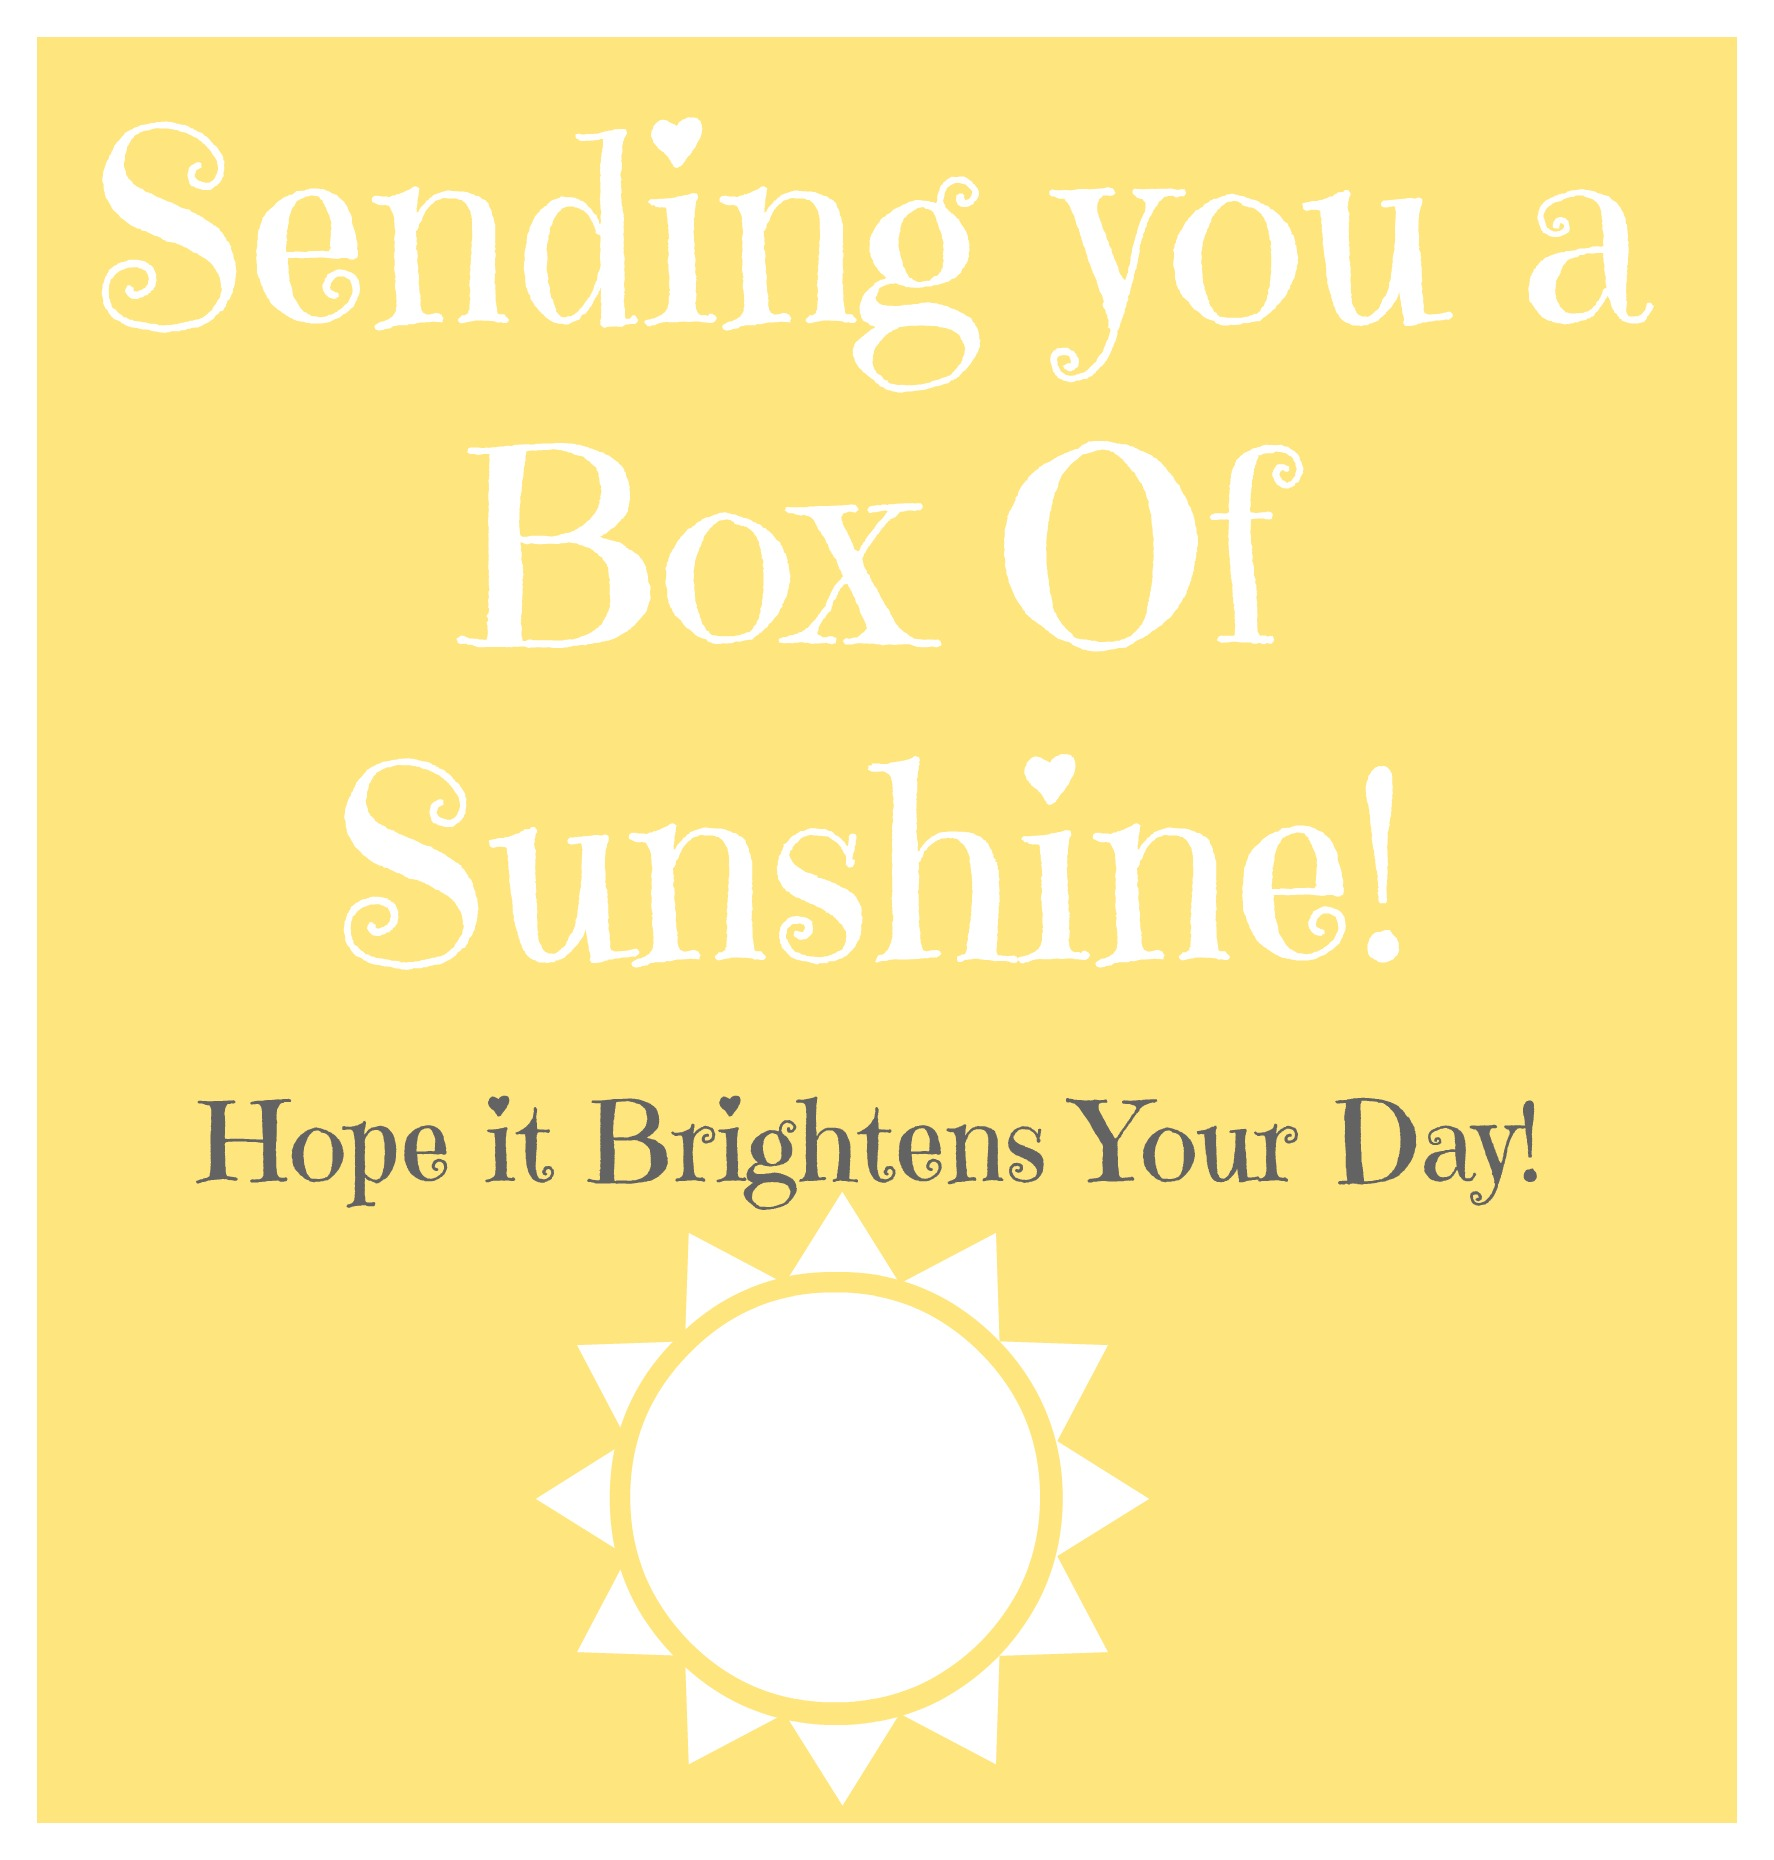 picture relating to Box of Sunshine Printable identify Rae of Sunlight!